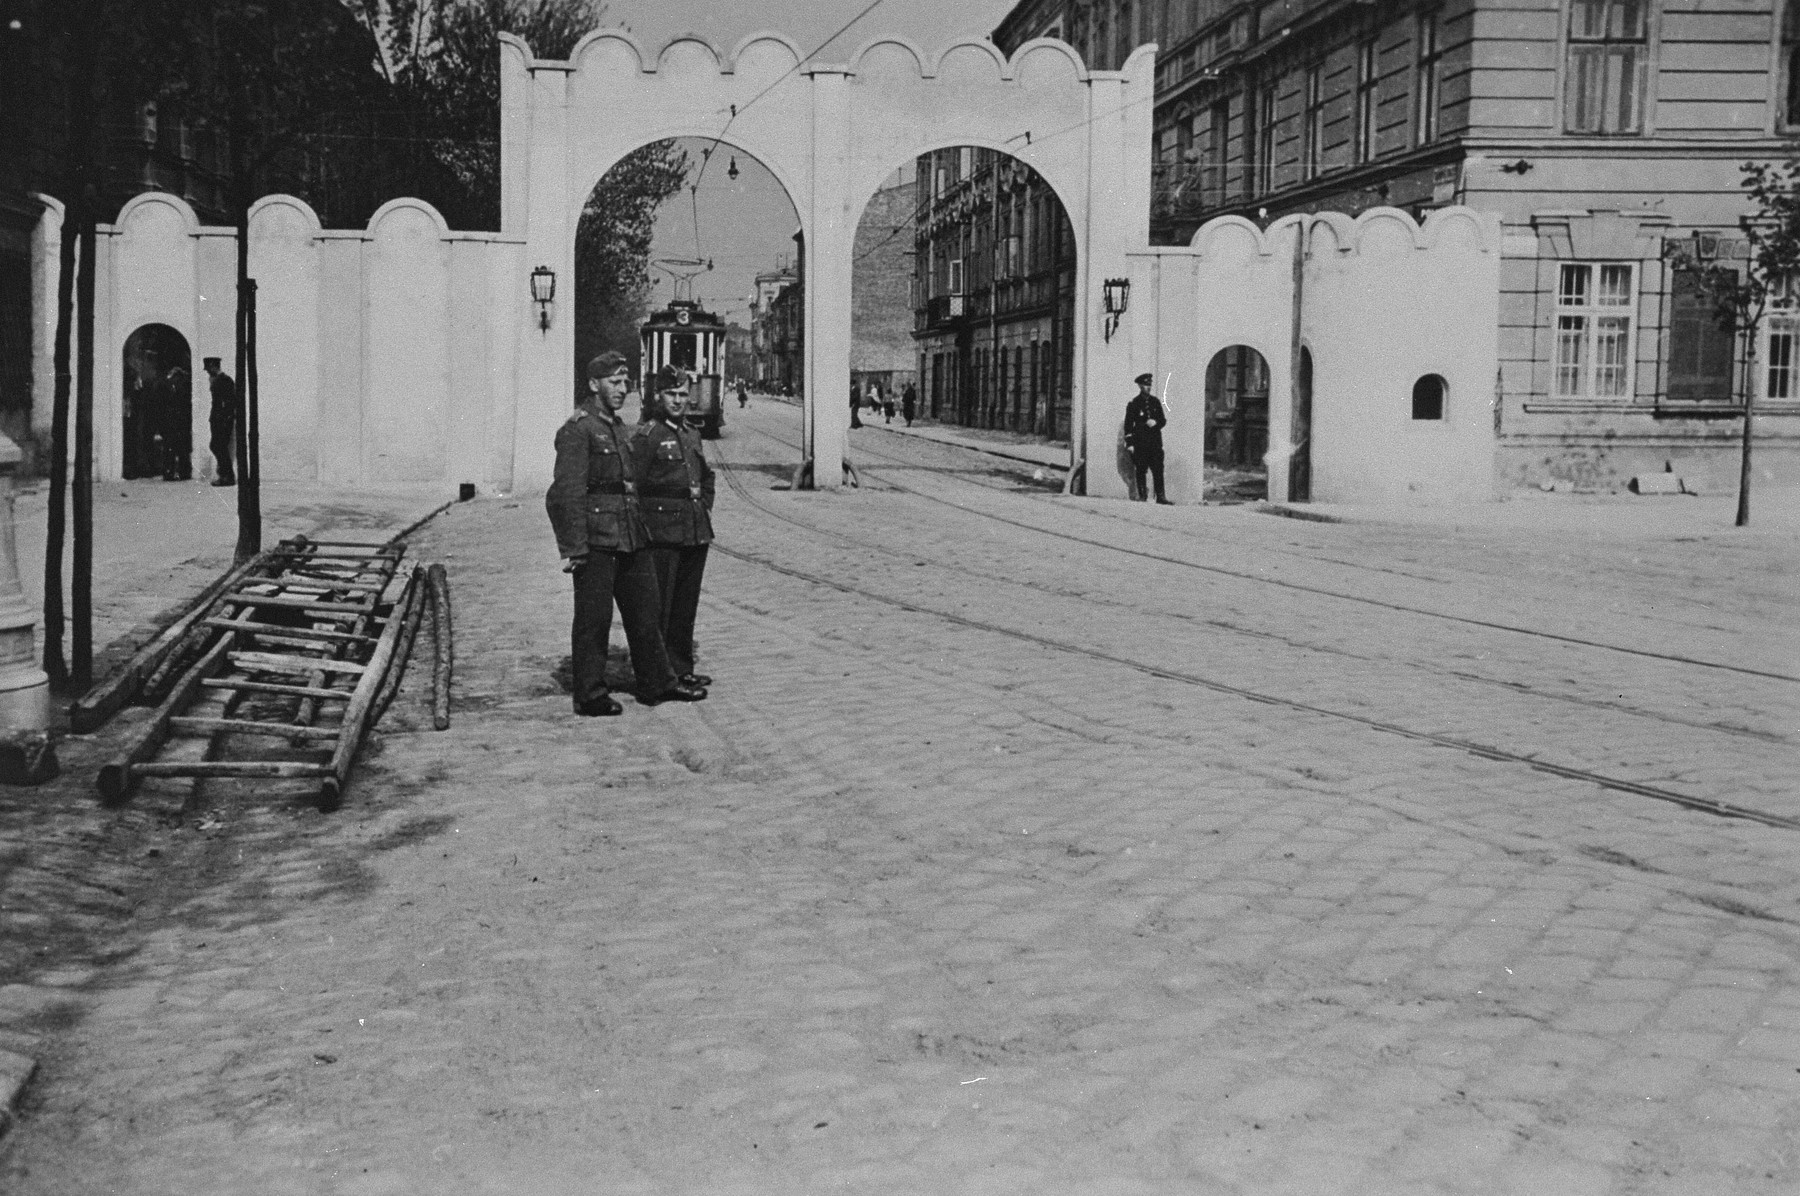 Two German soldiers pose near the gate at the entrance to the Krakow ghetto.